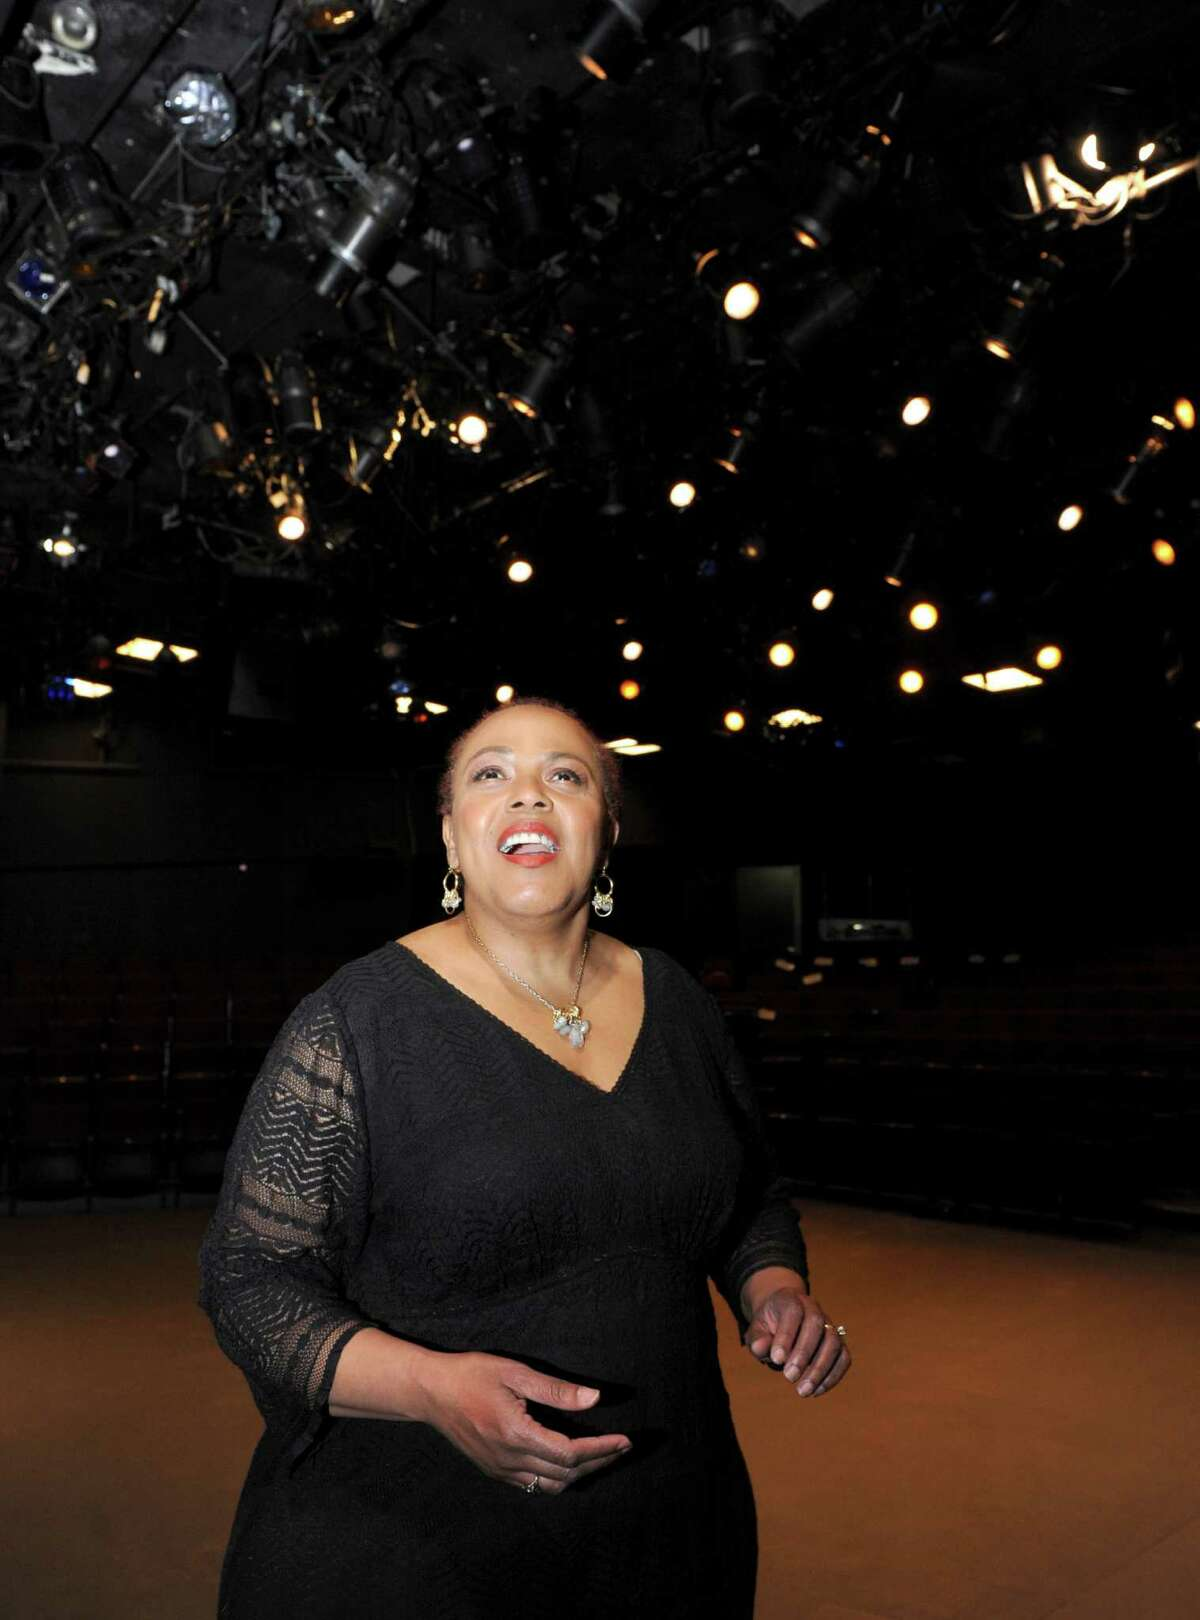 Barbara Howard at Capital Repertory Theatre on Wednesday May 18, 2016 in Albany, N.Y. (Michael P. Farrell/Times Union)